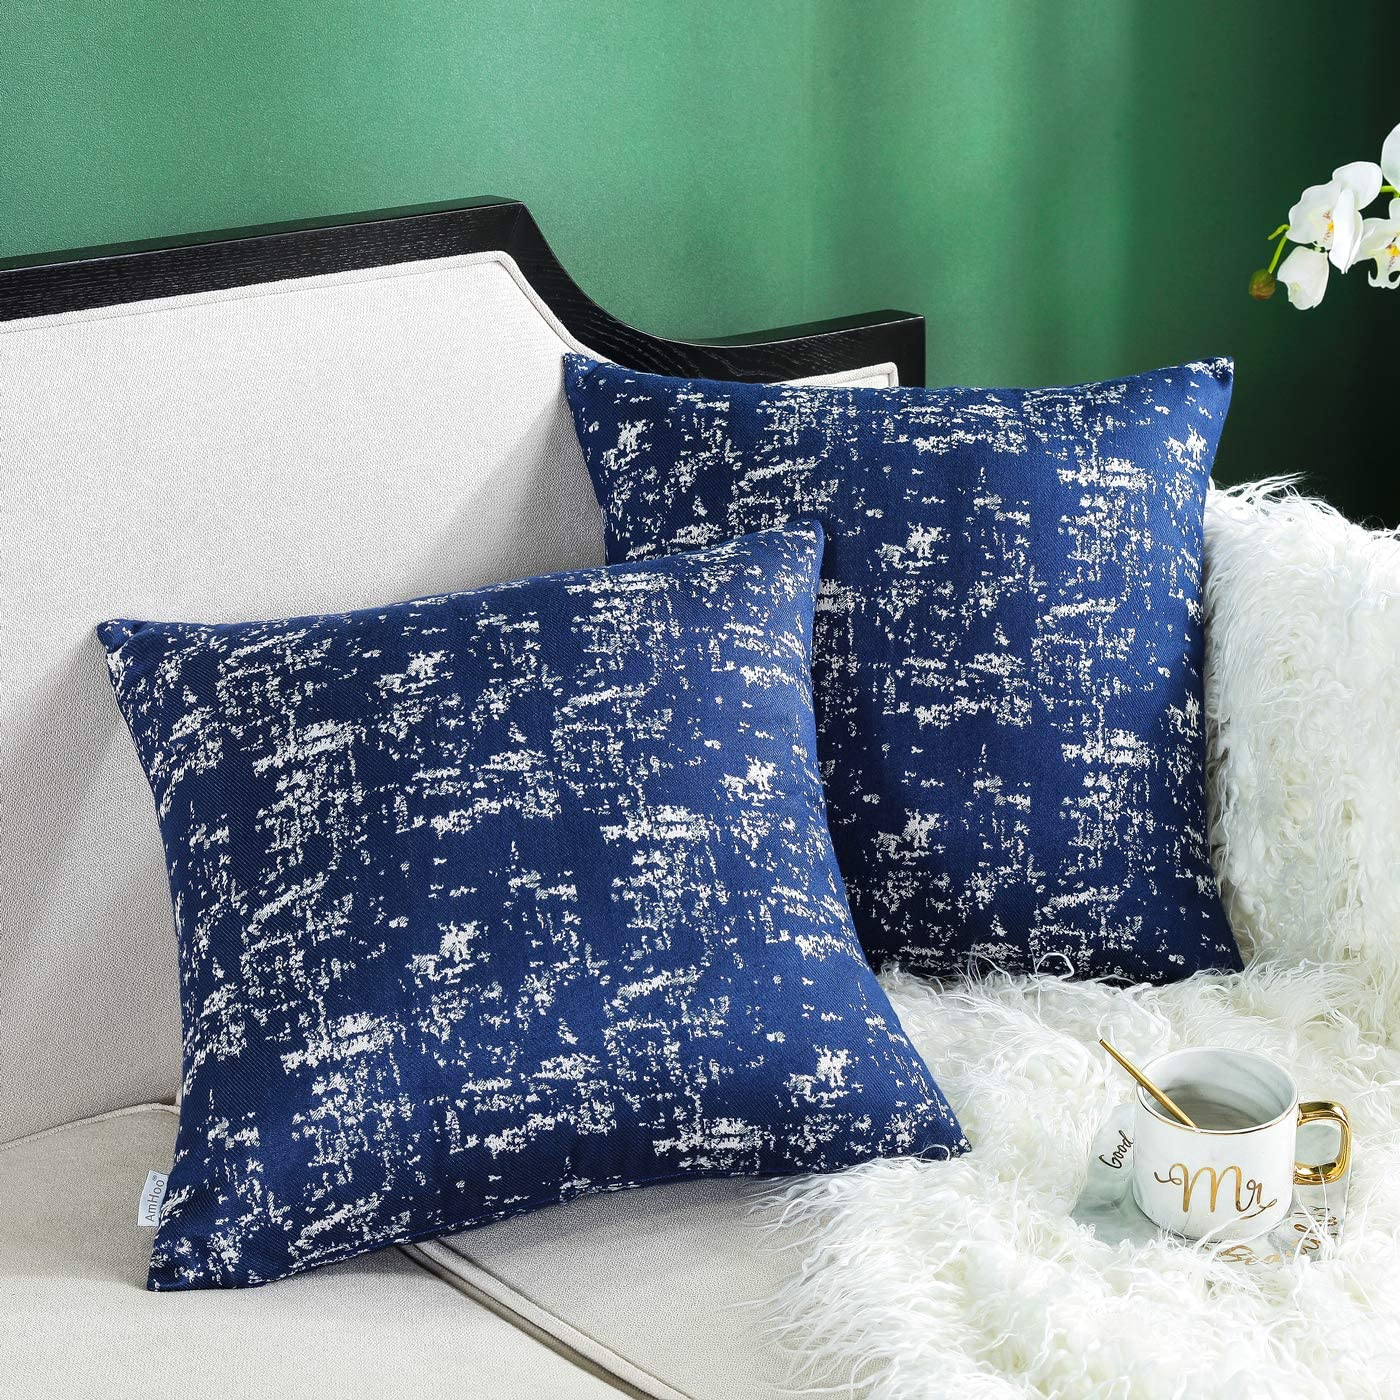 Amhoo Pack Of 2 Abstract Textured Art Cotton Blend Throw Pillow Covers Double Sided Jacquard Pillowcase Home Decorative Cushion Cover For Couch Sofa 18x18 Inch Navy Blue Home Kitchen